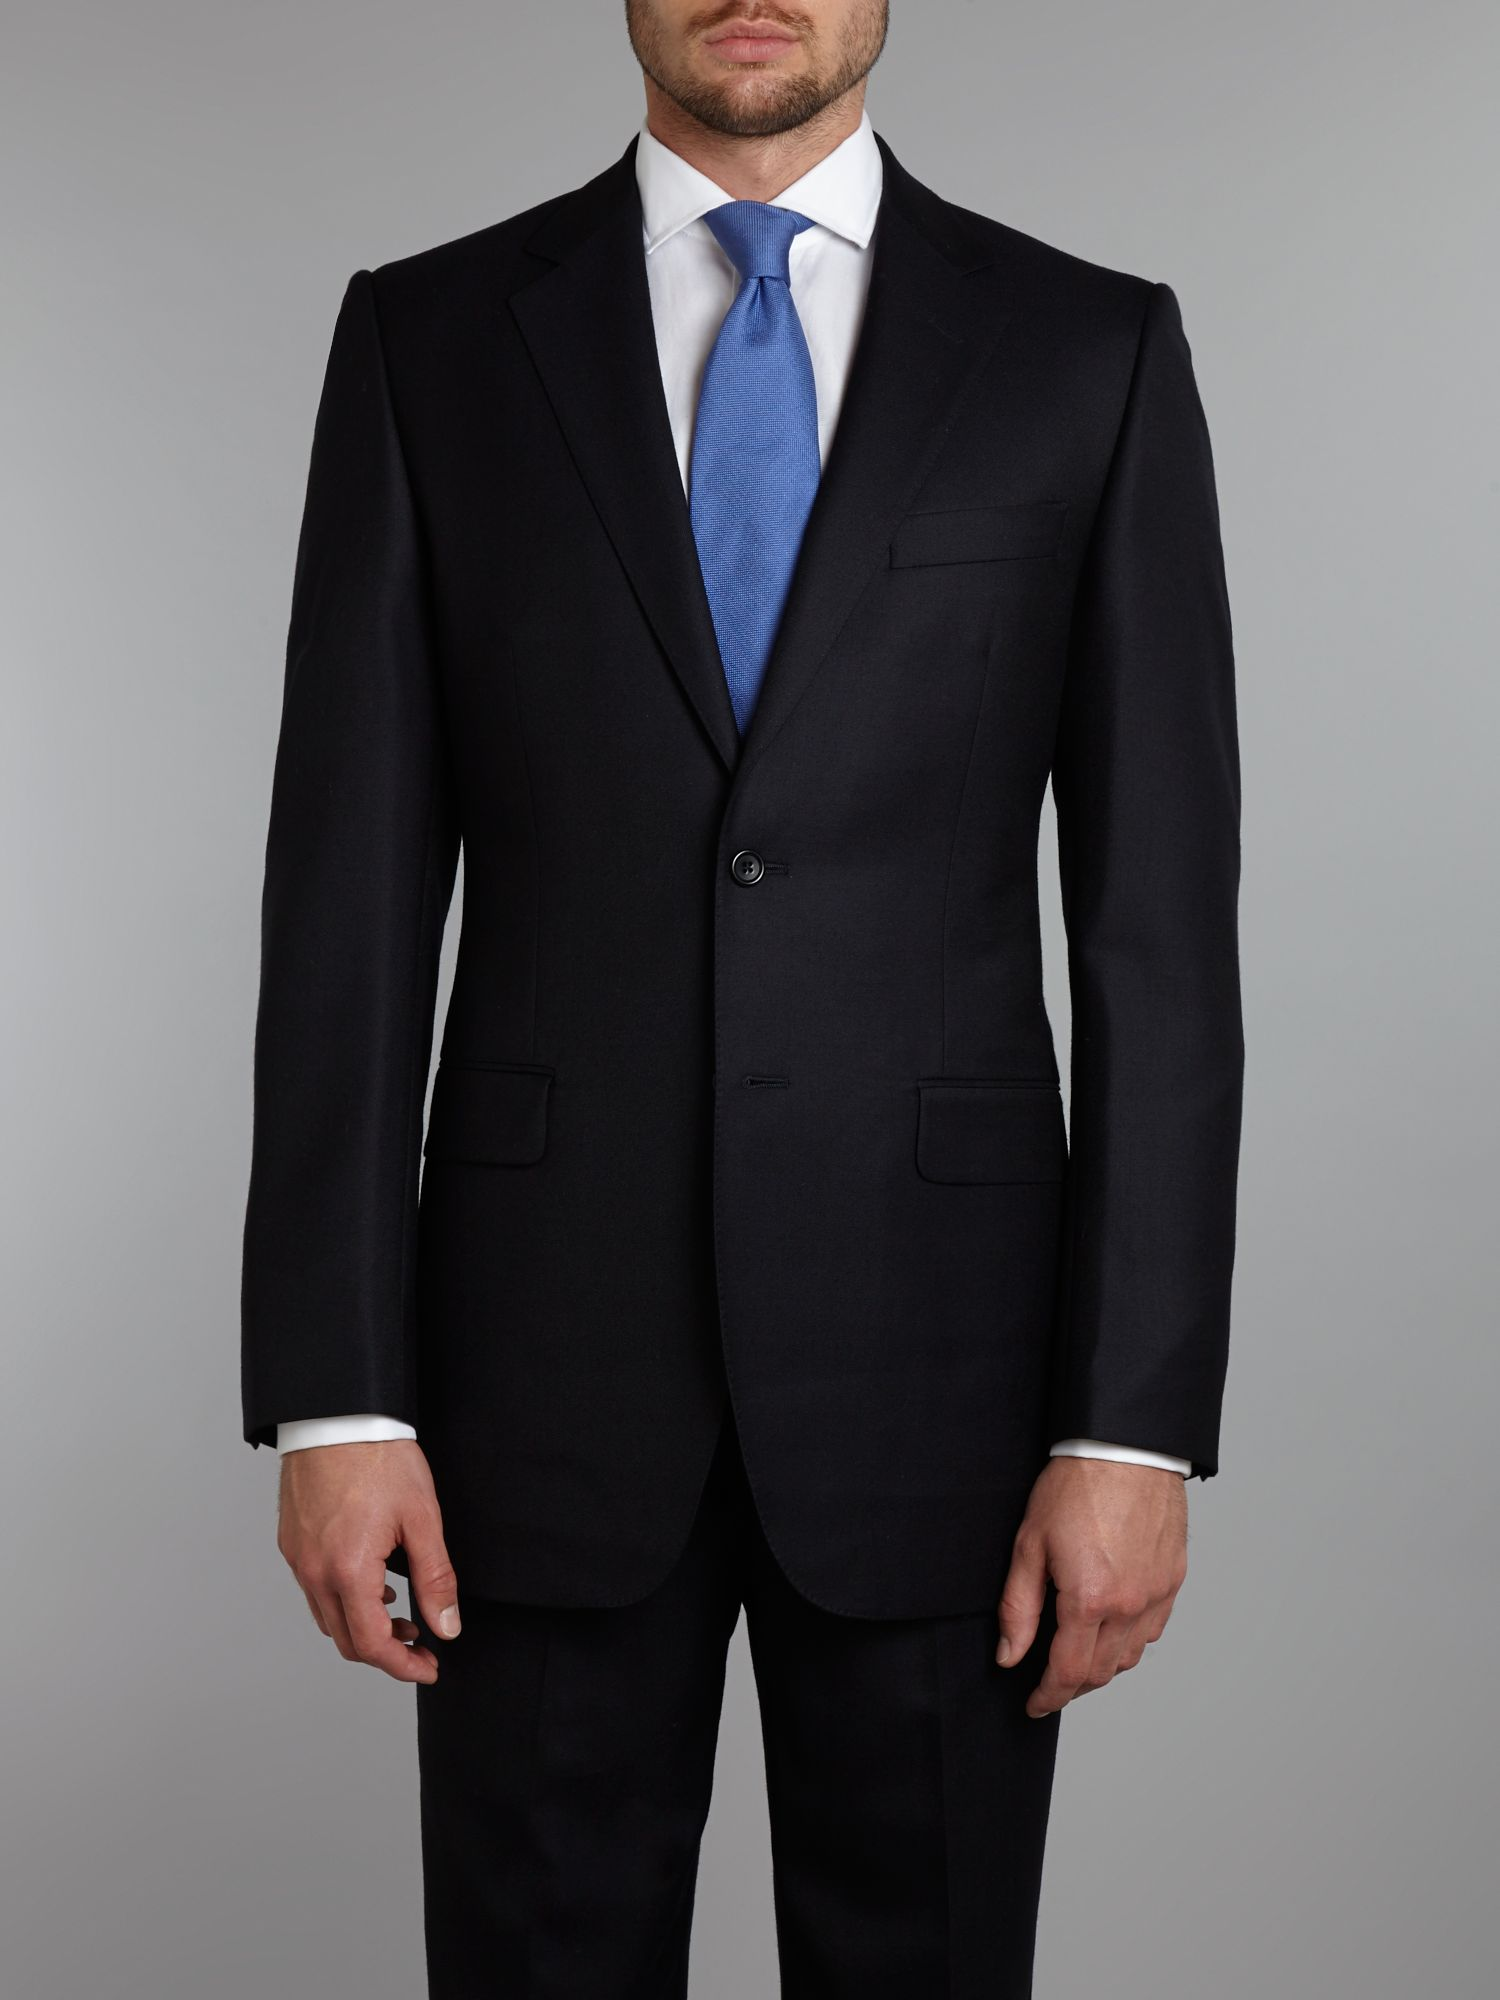 Buckingham plainweave blazer